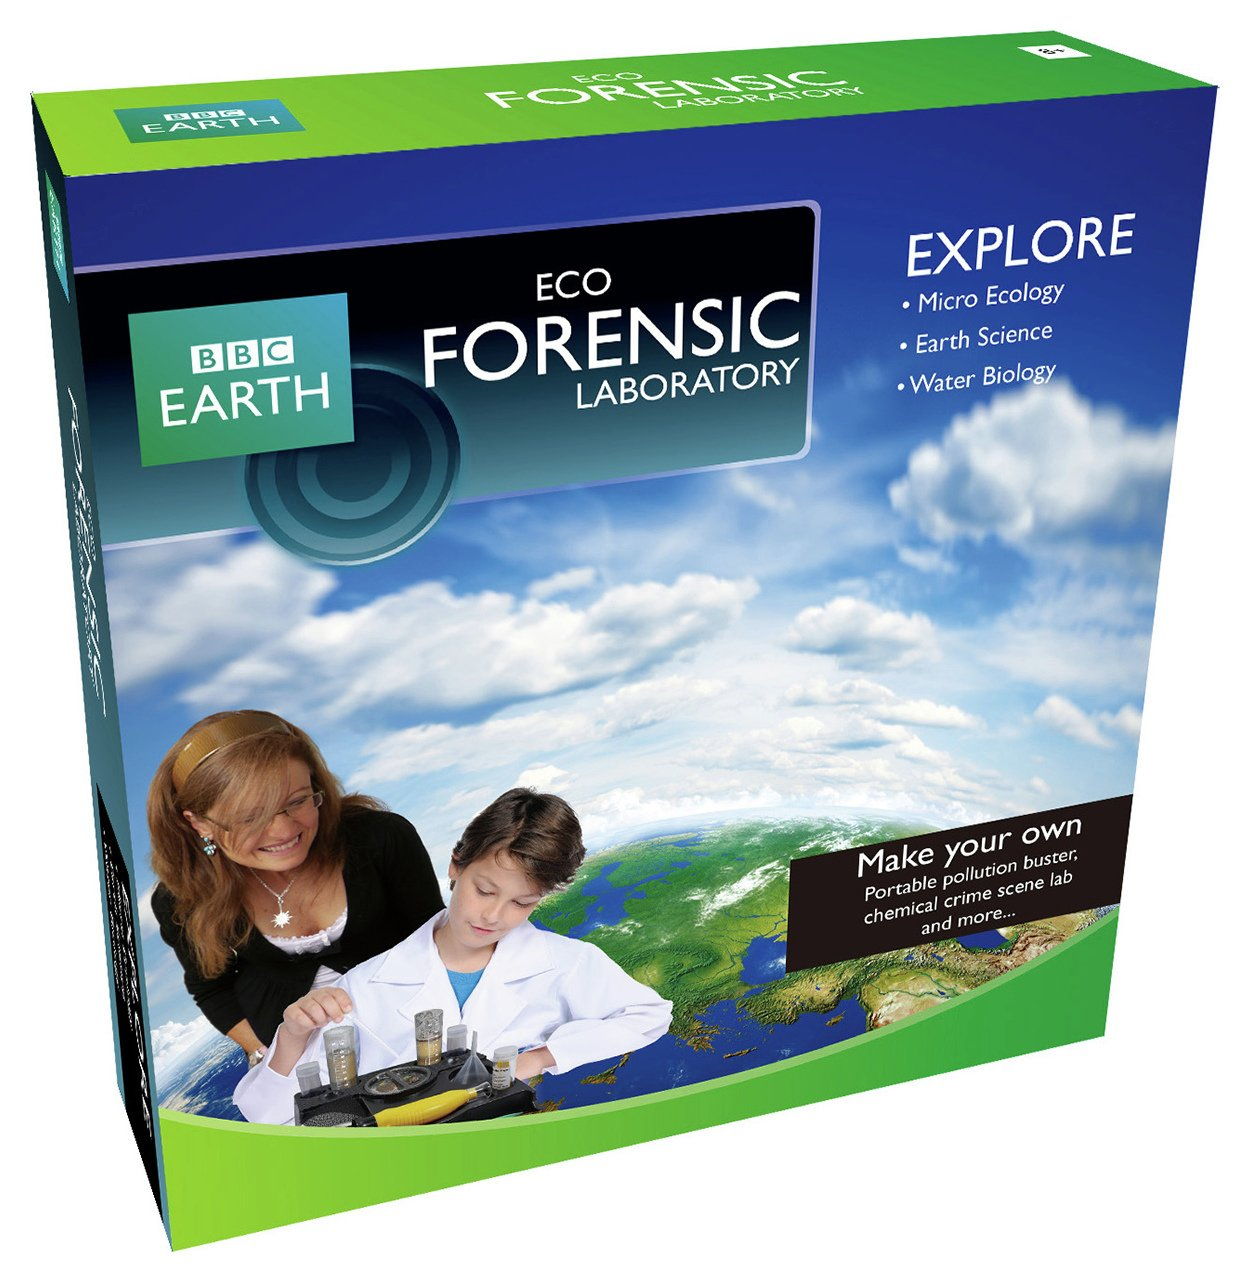 Image of BBC Earth Eco Forensic Kit.